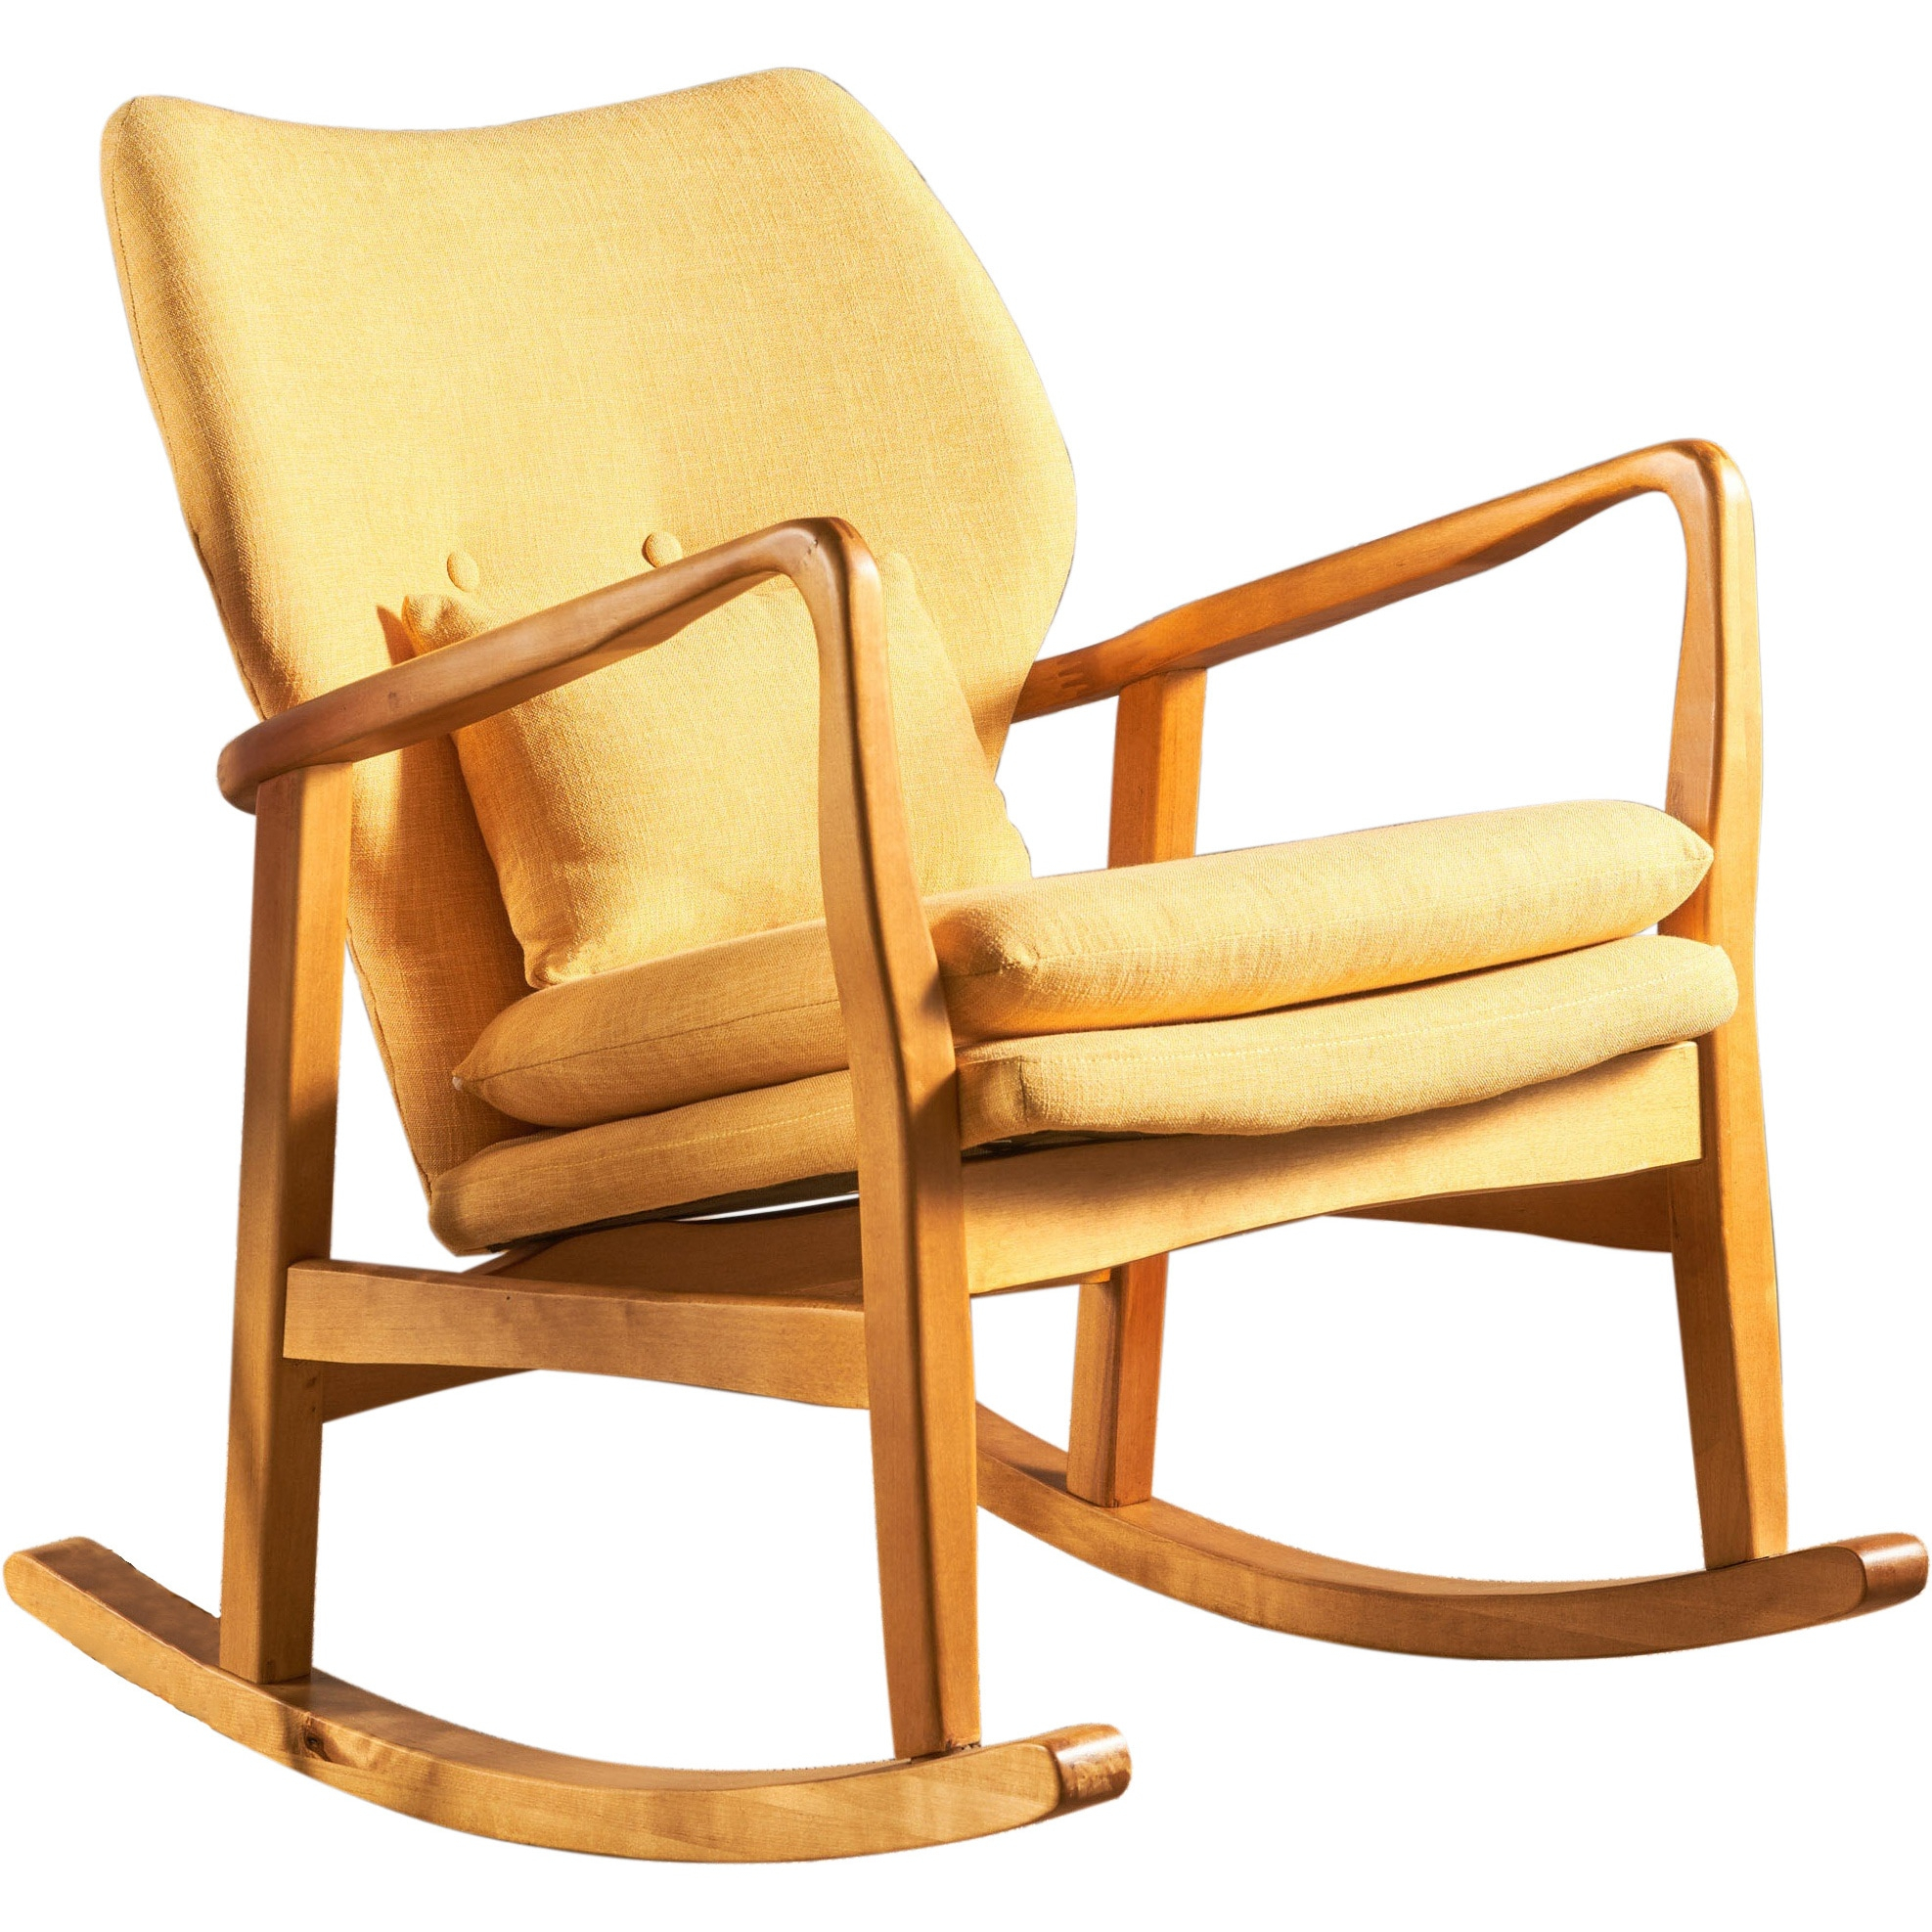 Benny Mid Century Modern Fabric Rocking Chair In Mid Century Fabric Rocking Chairs (View 7 of 20)